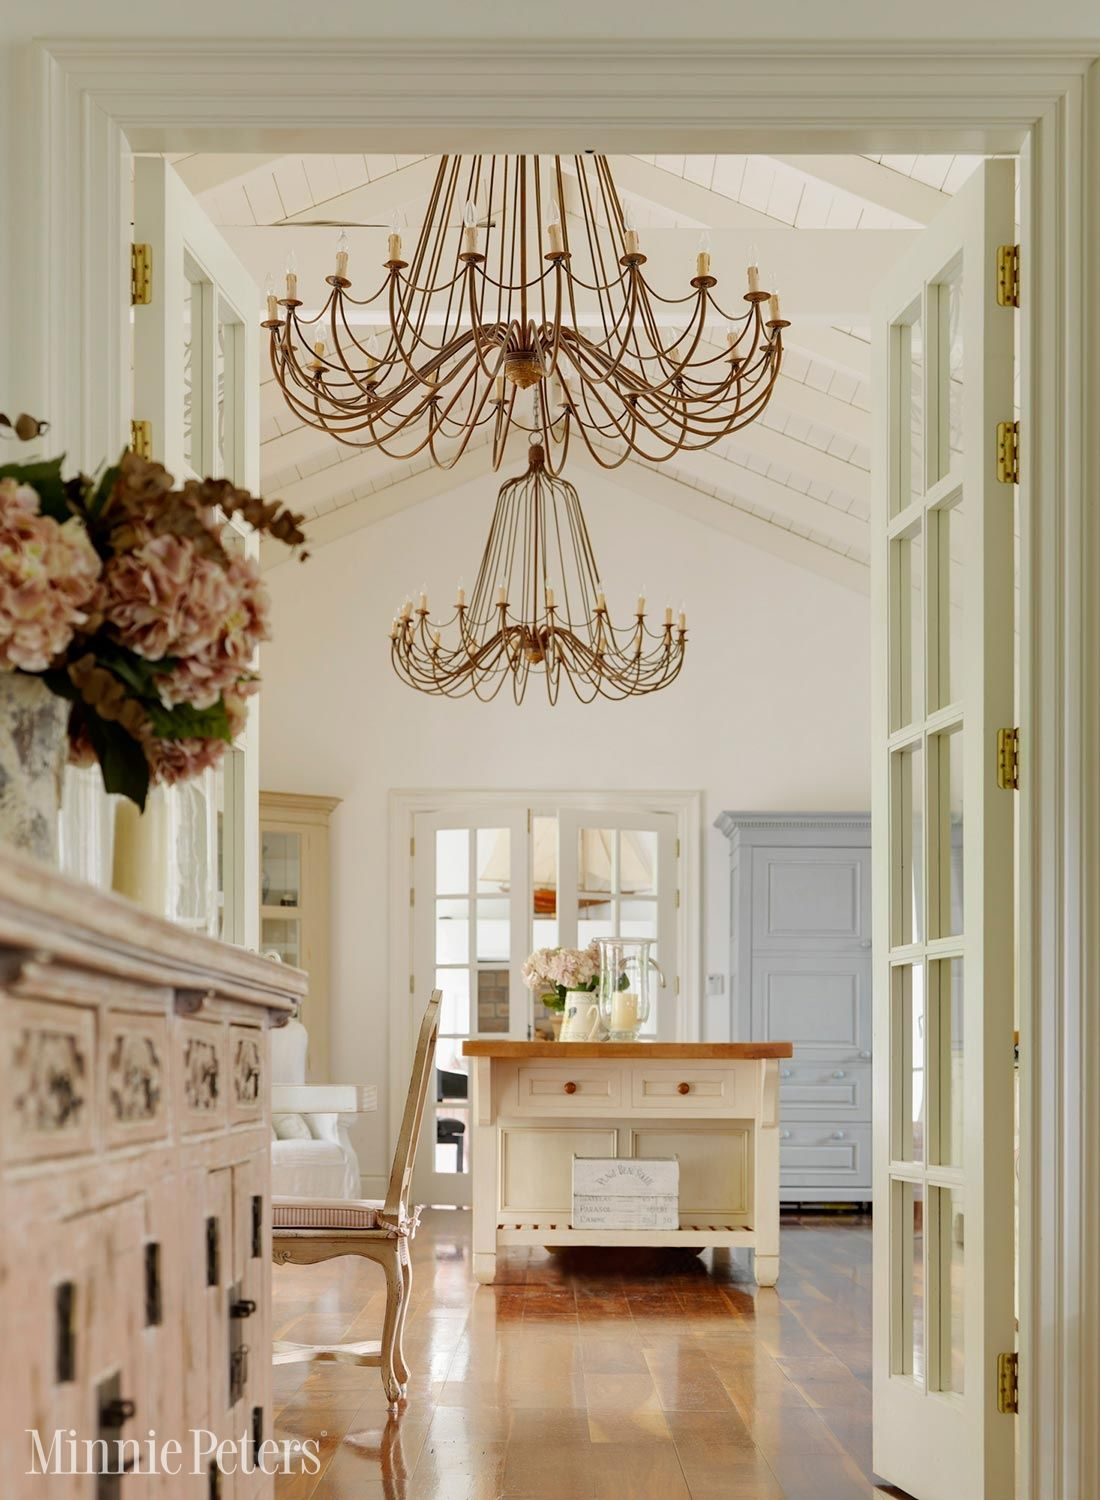 Minniepeters  Large Chandeliers With Kitchen Island Cool Kitchen Chandeliers Inspiration